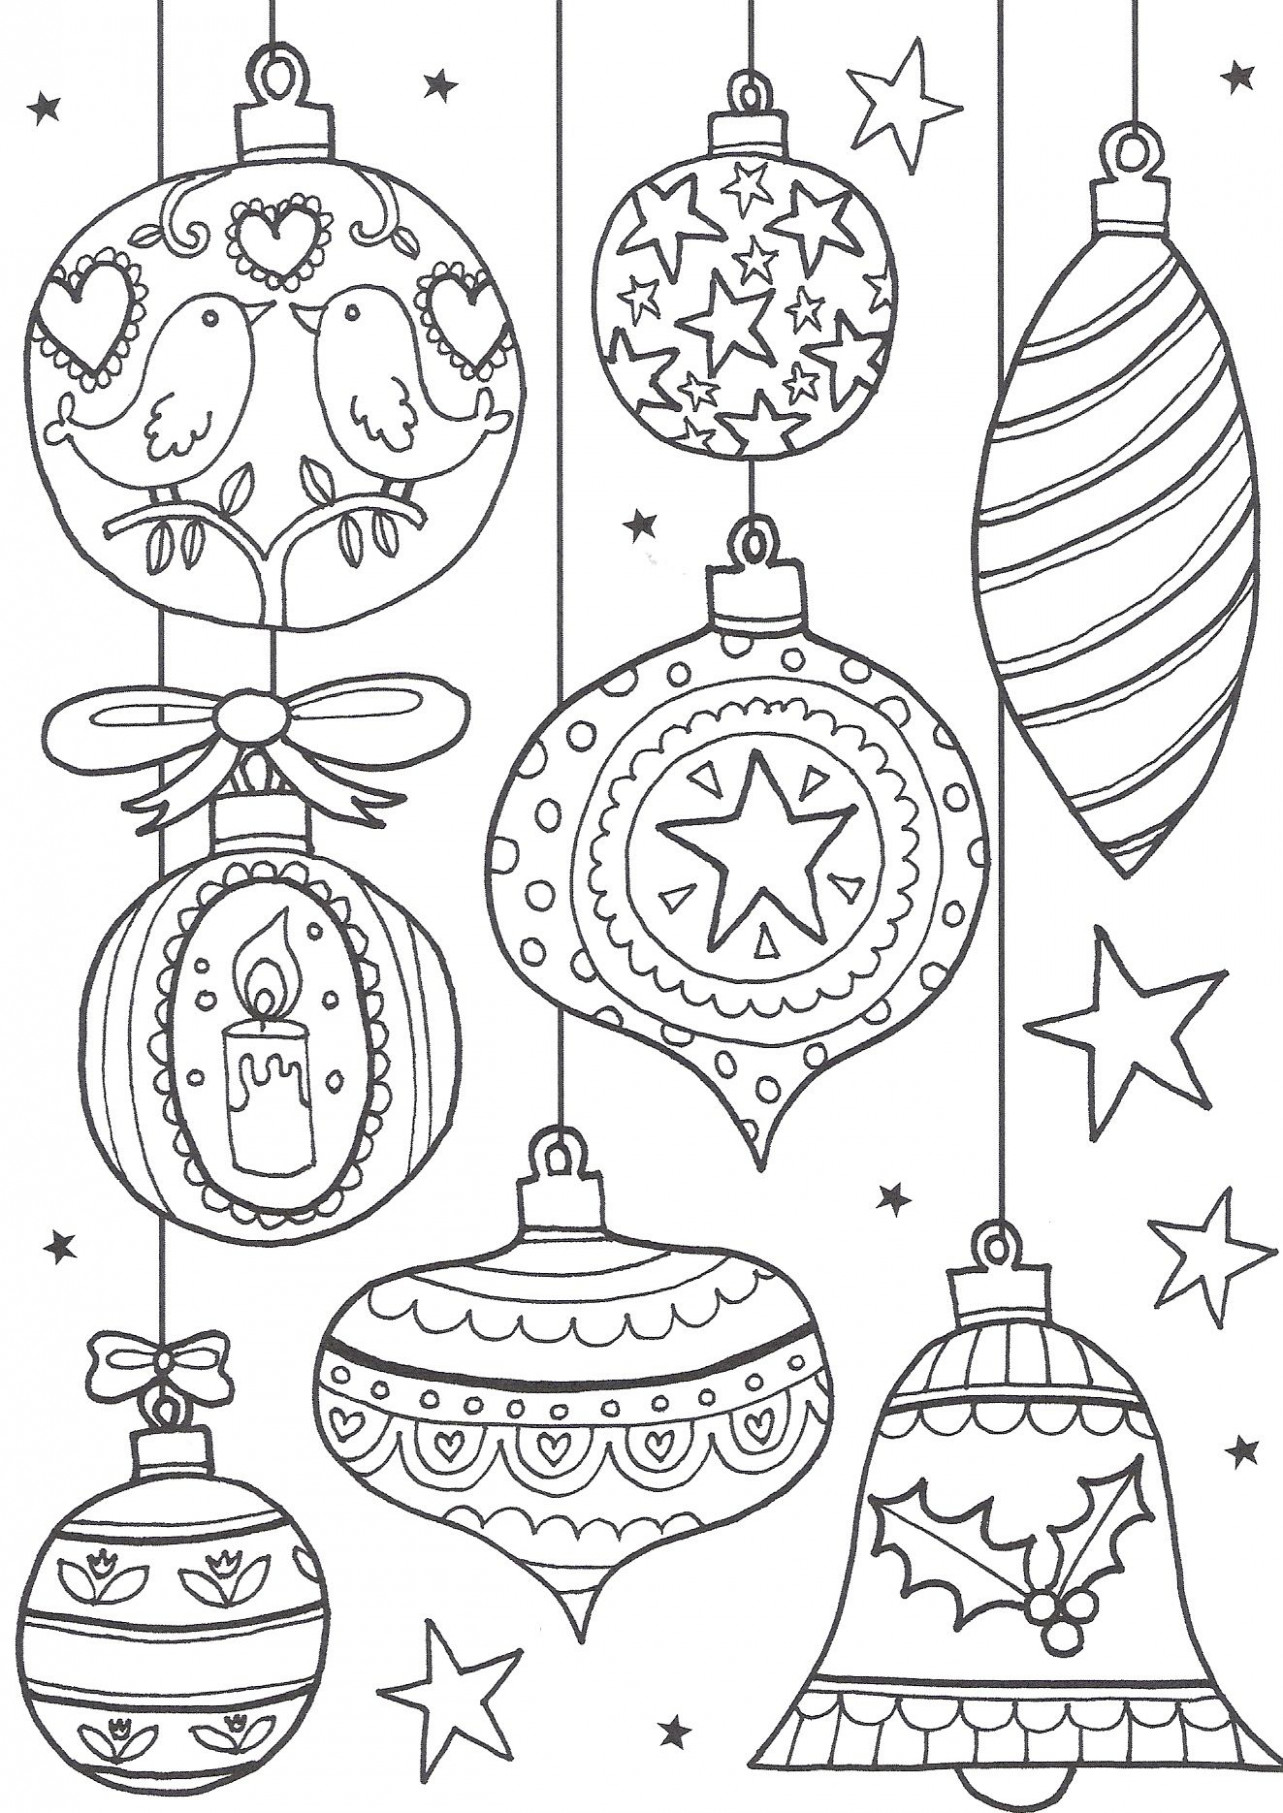 Free Christmas Colouring Pages for Adults – The Ultimate Roundup ..